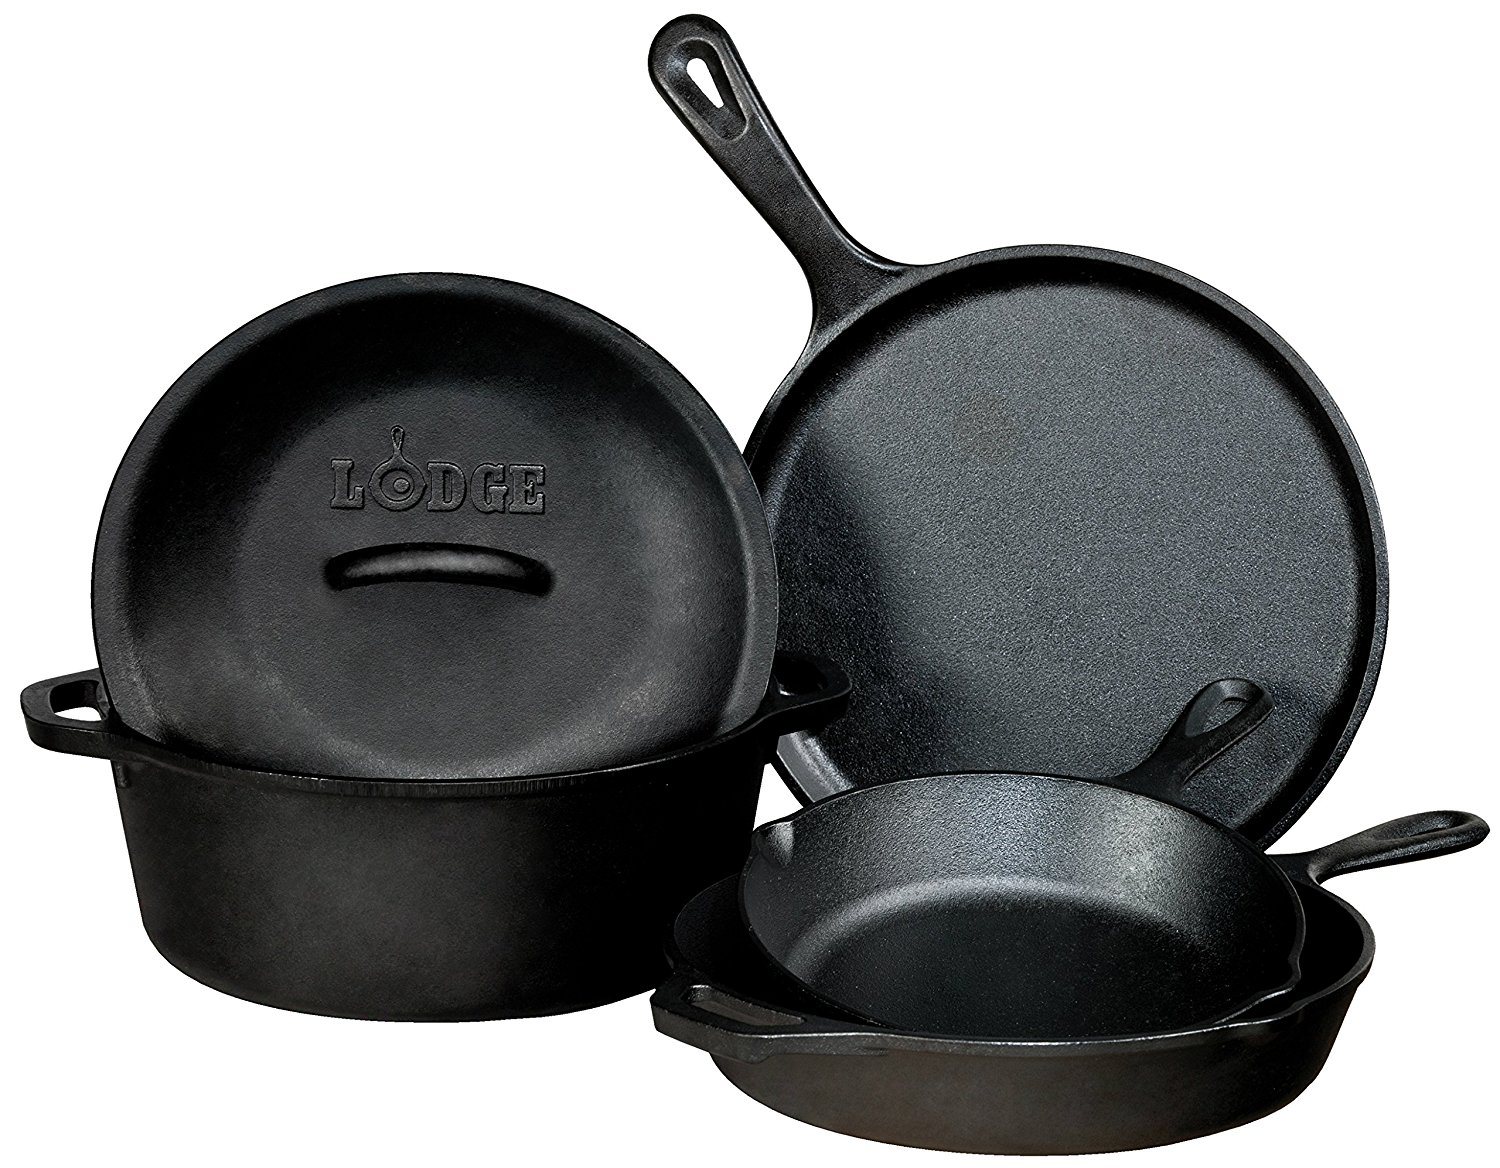 Lodge 5 piece cookware set